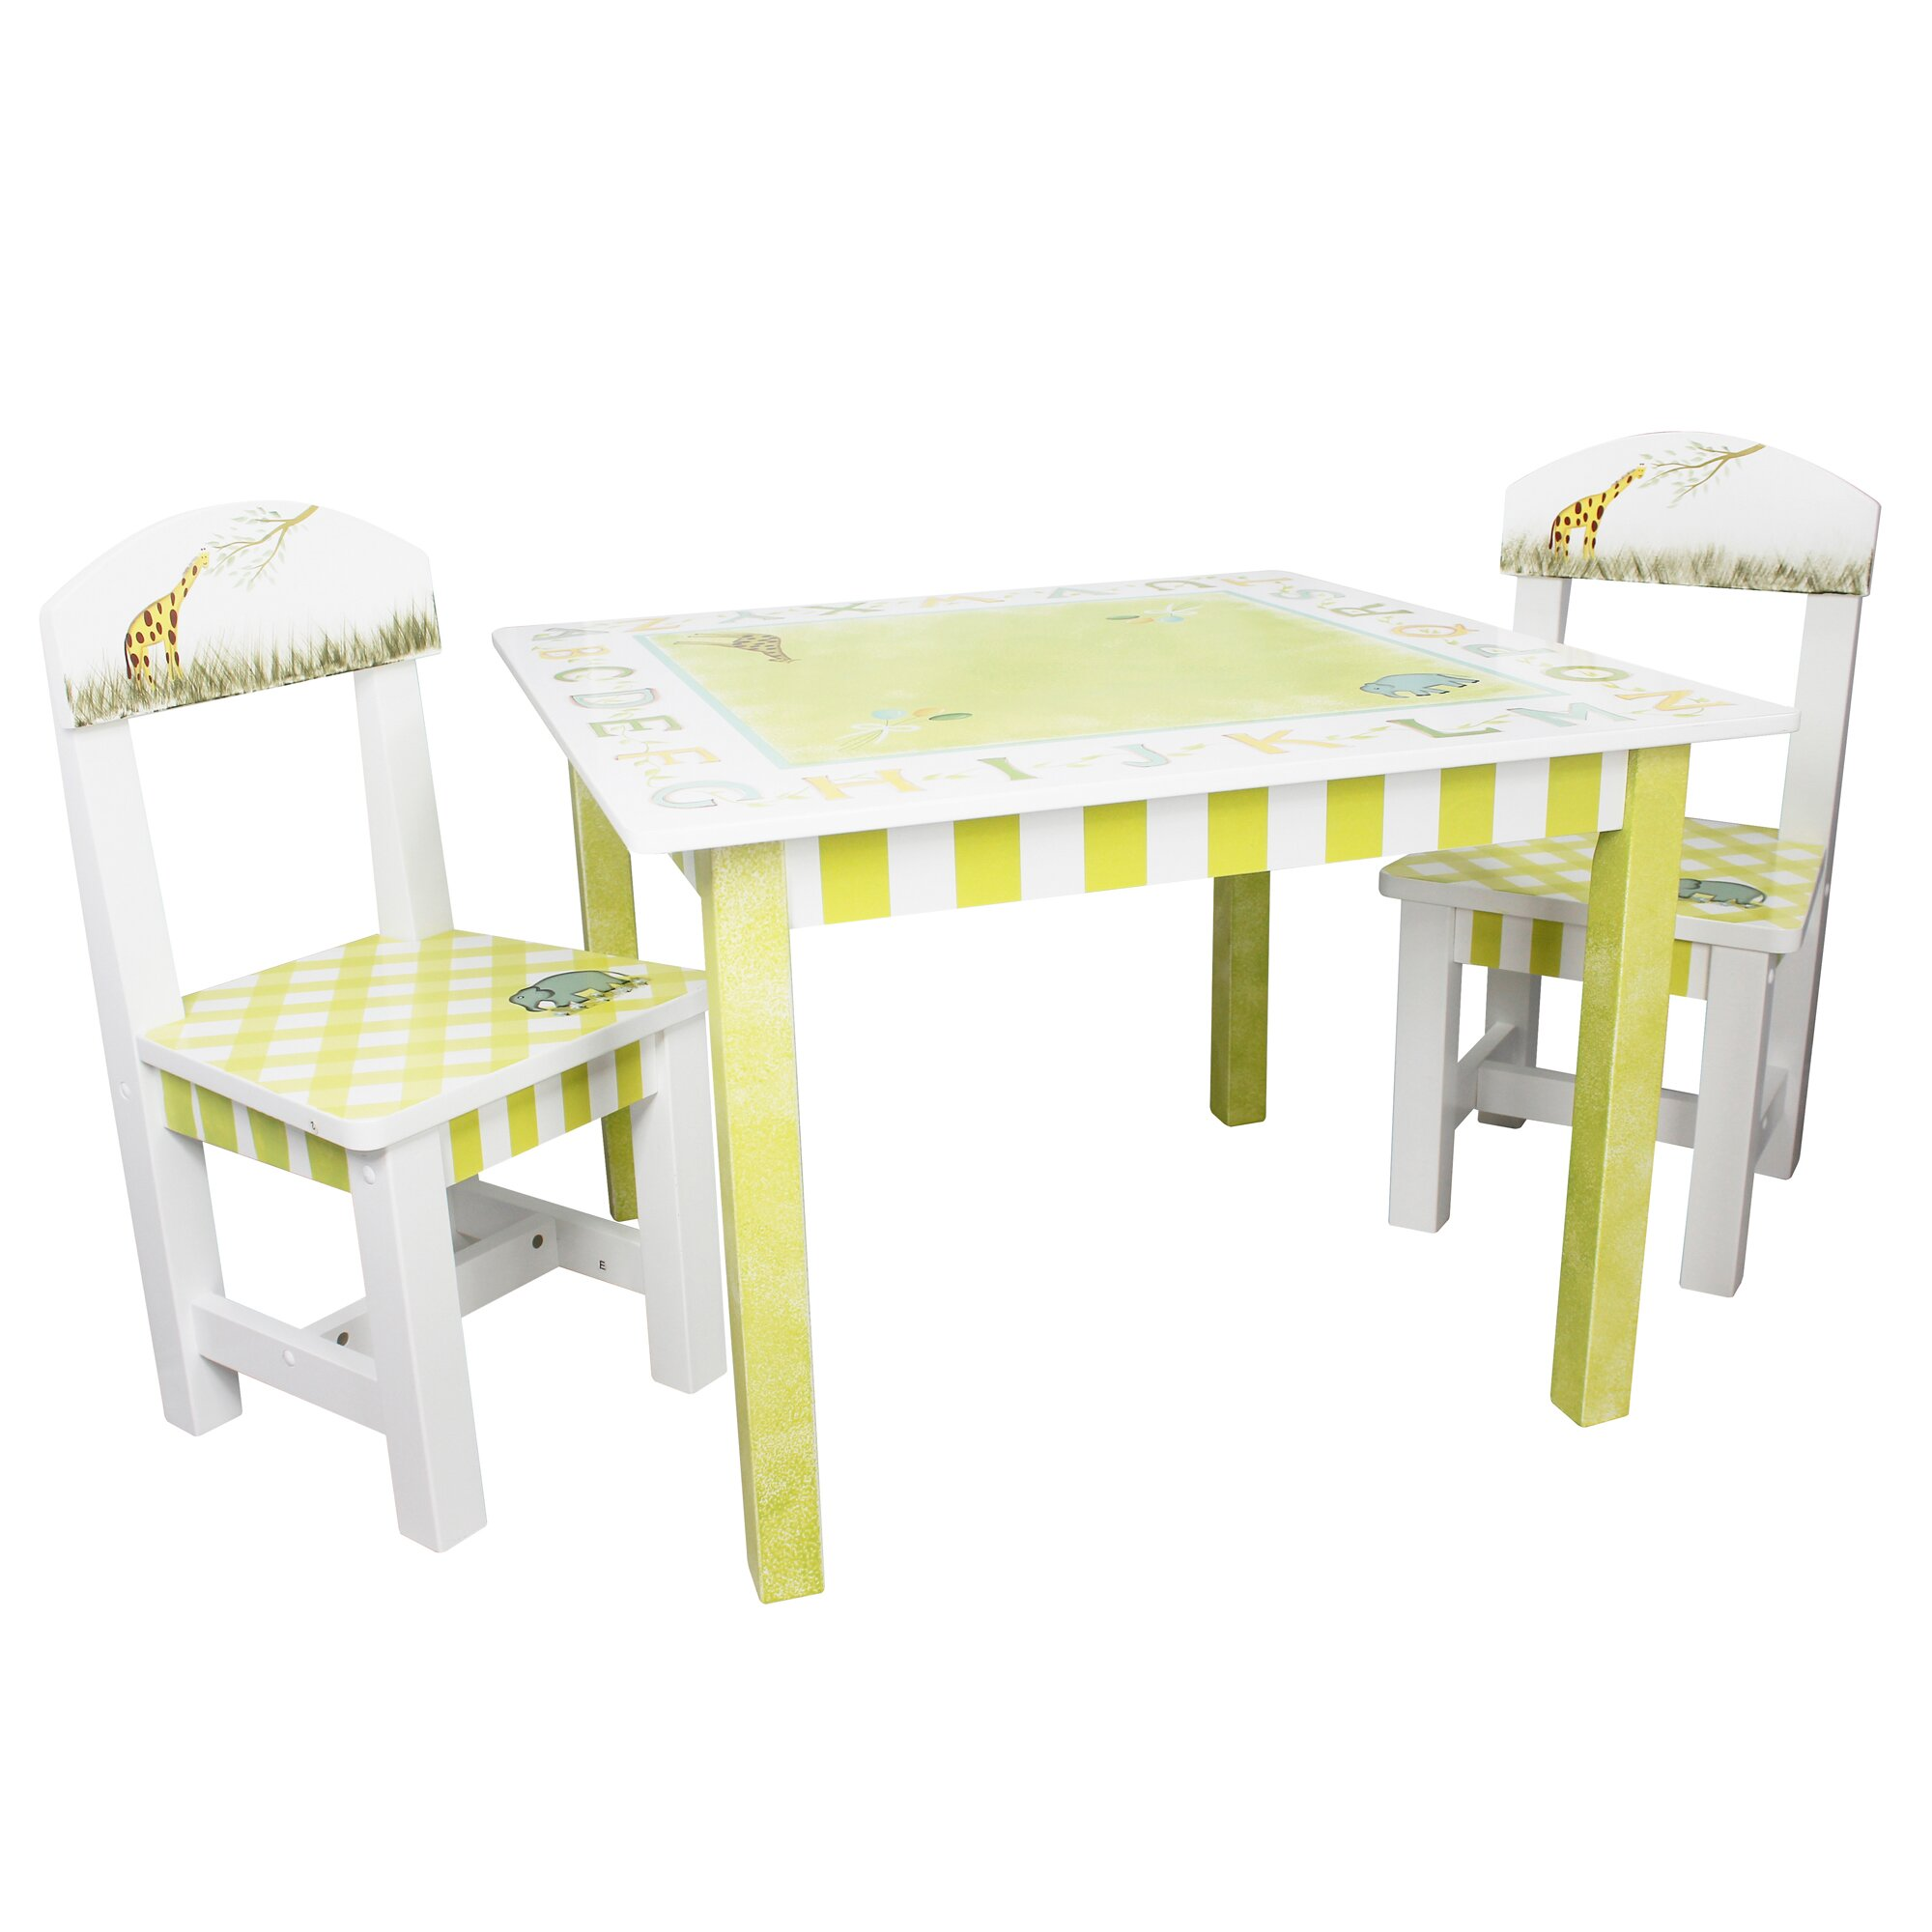 Fantasy fields alphabet kids 3 piece table and chair set for Table and chair set